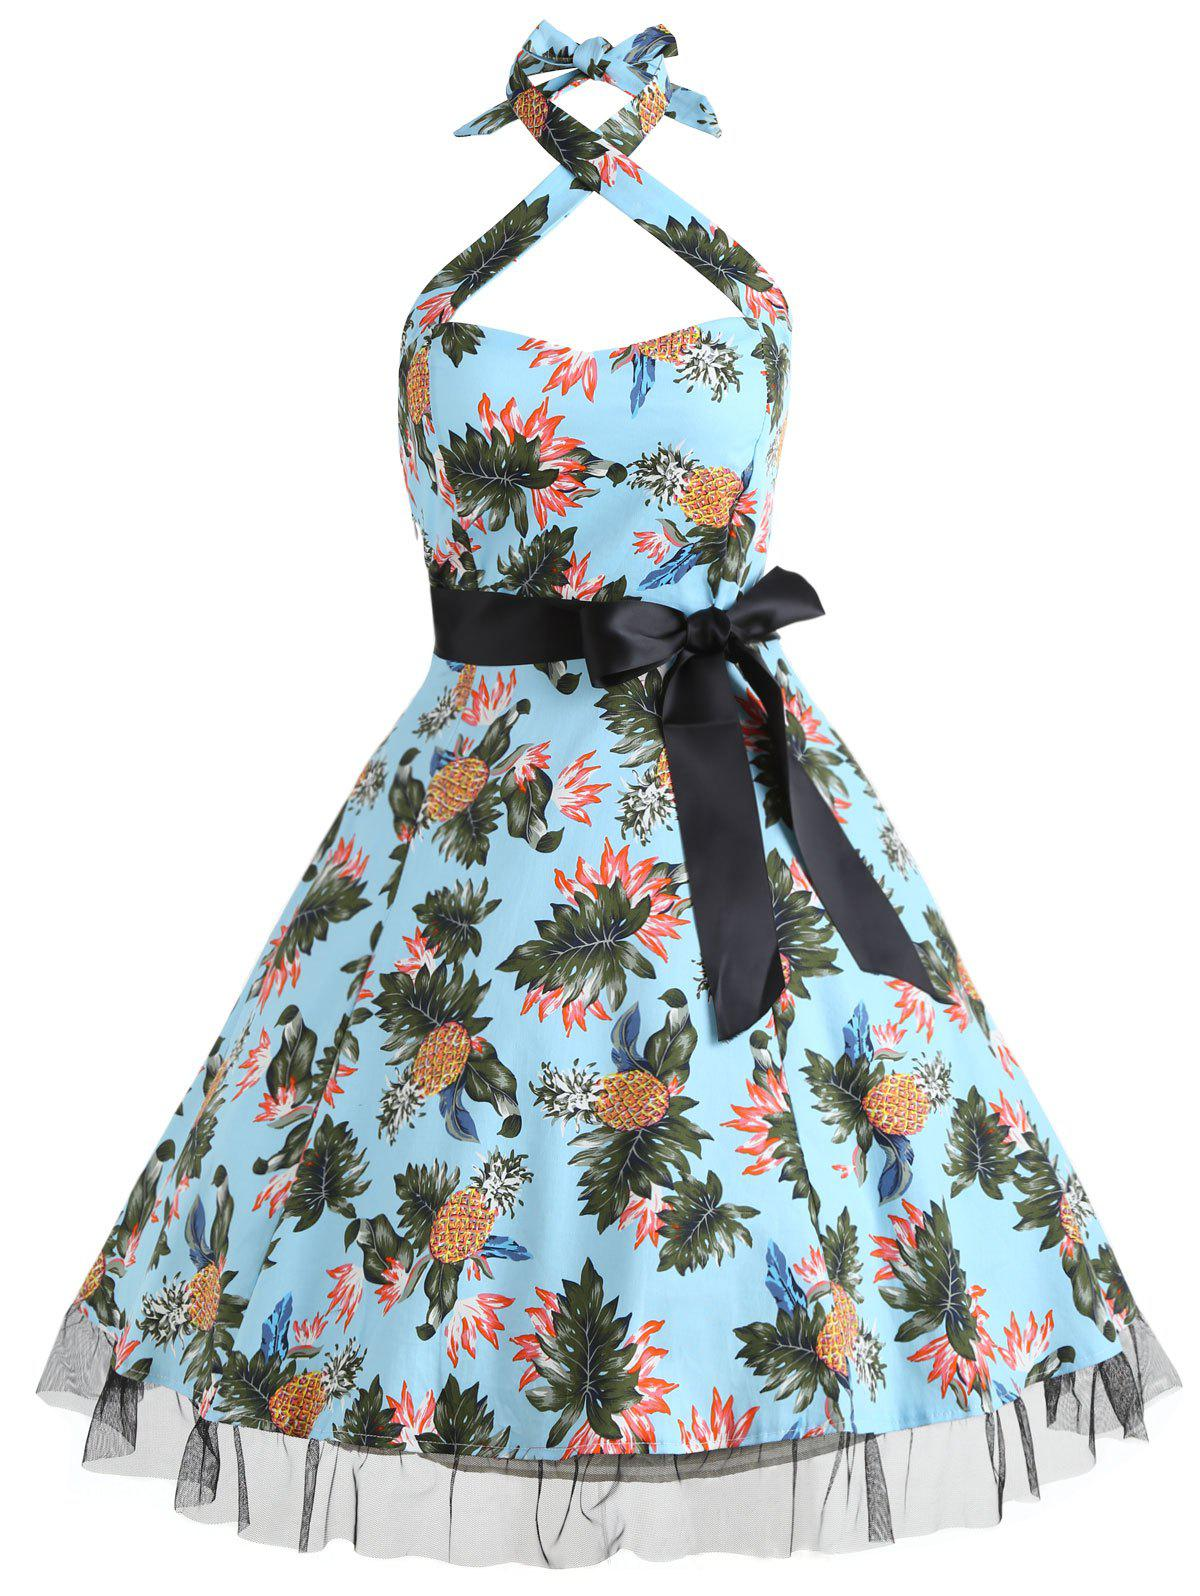 Chic Vintage Pineapple Print Pin Up Dress